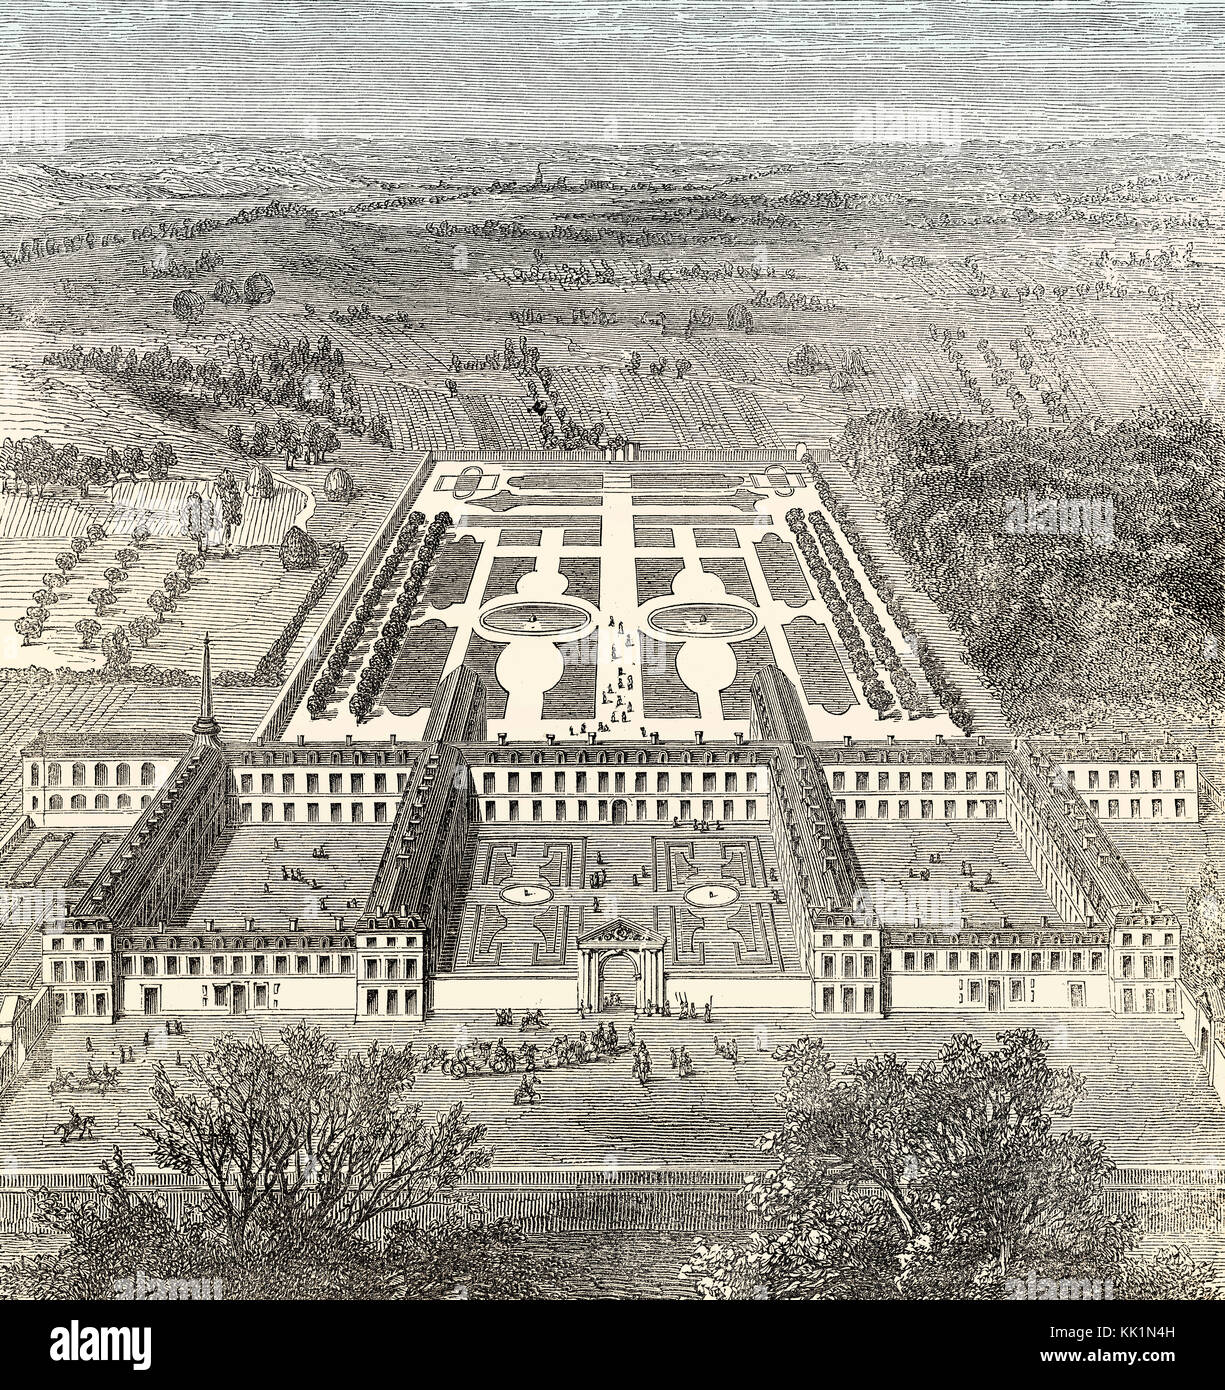 The Maison Royale de Saint-Louis in 1684, Saint-Cyr, Saint-Cyr-l'École,  Yvelines, France